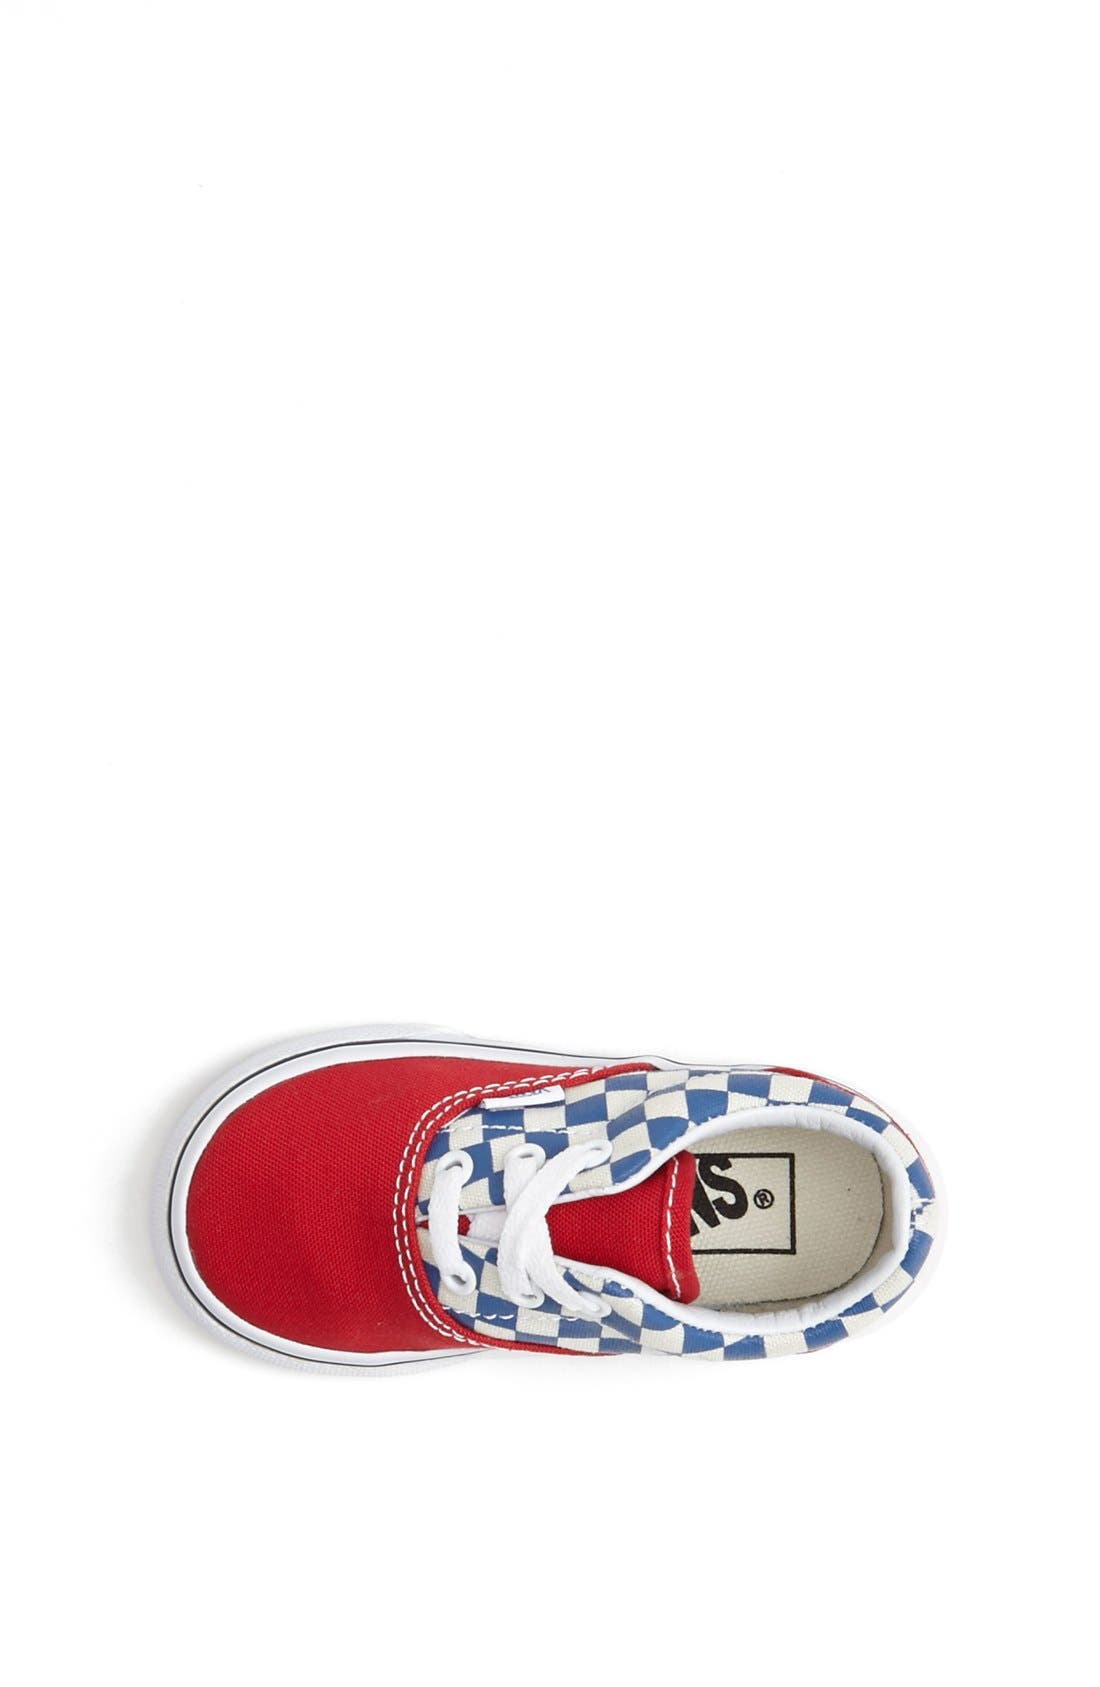 Alternate Image 3  - Vans 'Era - Checkerboard' Sneaker (Baby, Walker & Toddler)